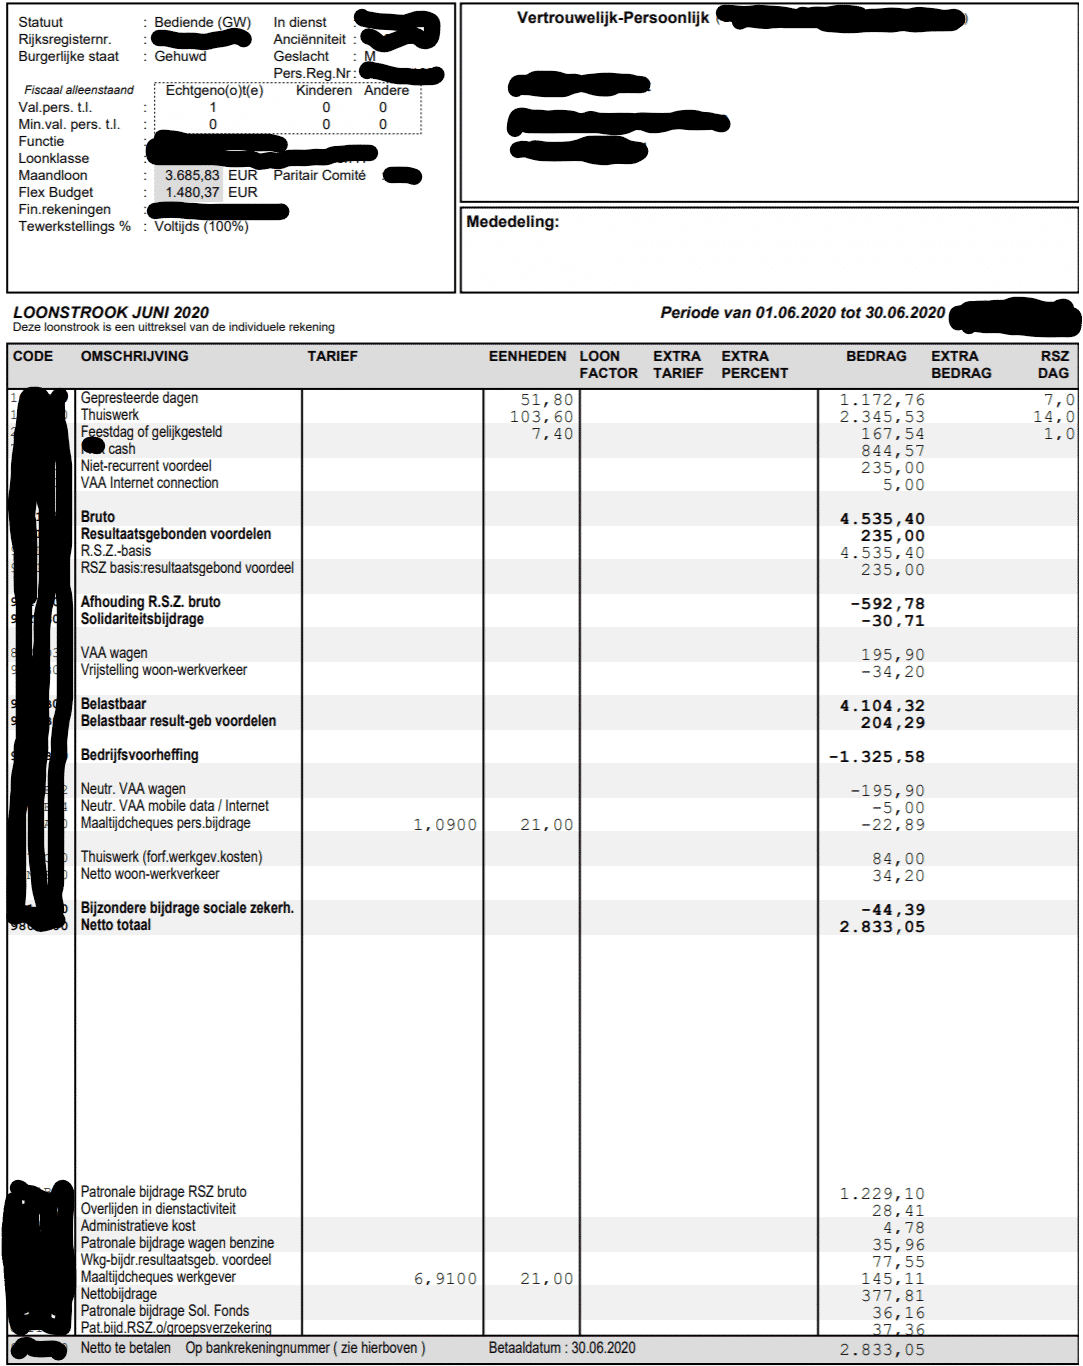 My full pay slip